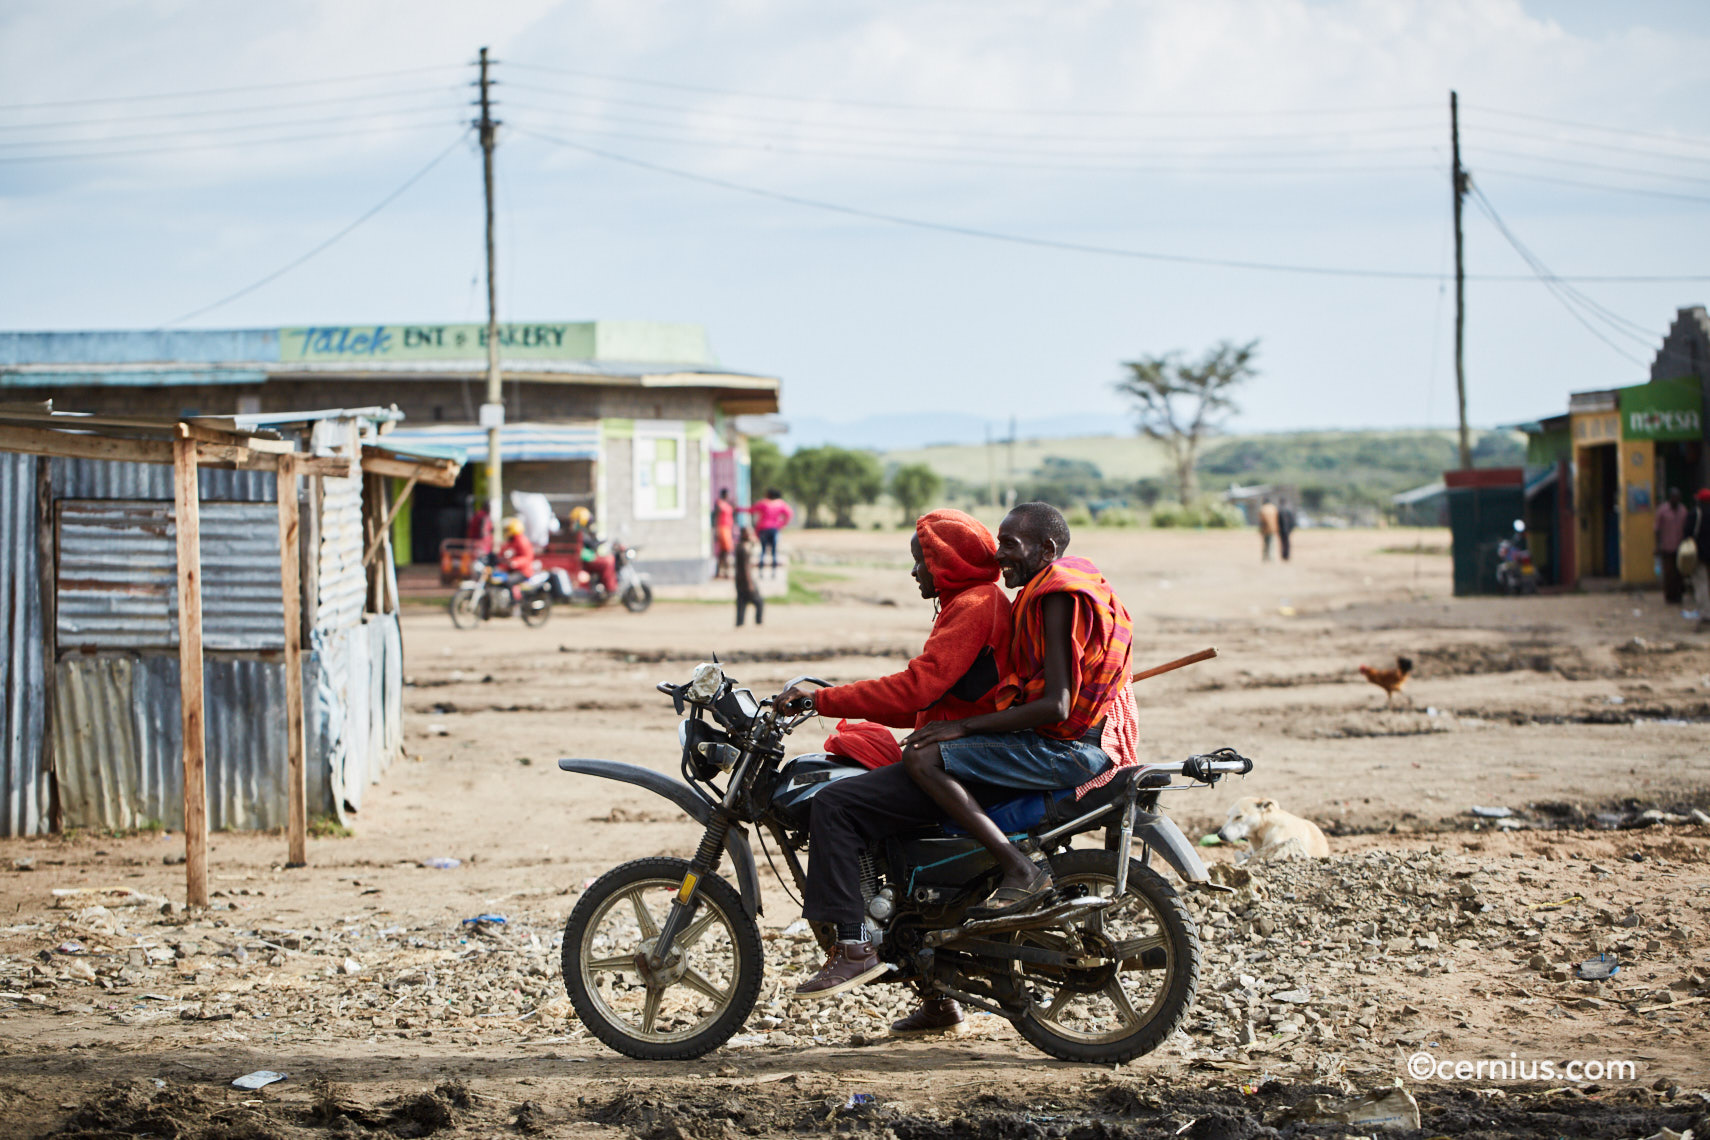 Motorcycle Ride in Takek, Narok County, Kenya | Juozas Cernius